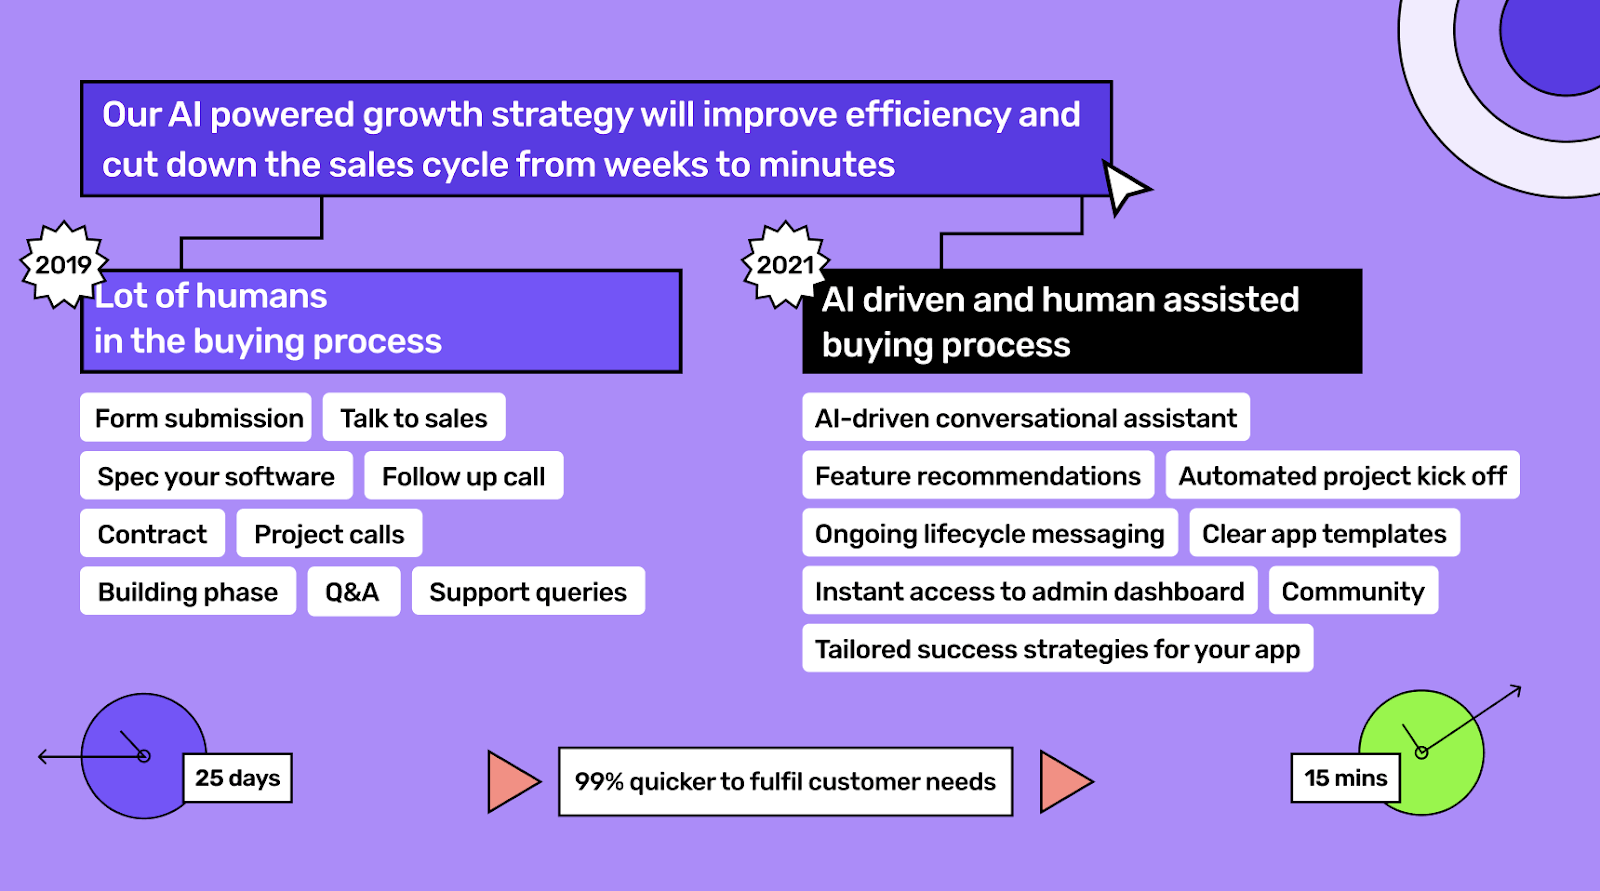 AI Powered growth strategy at Builder.ai